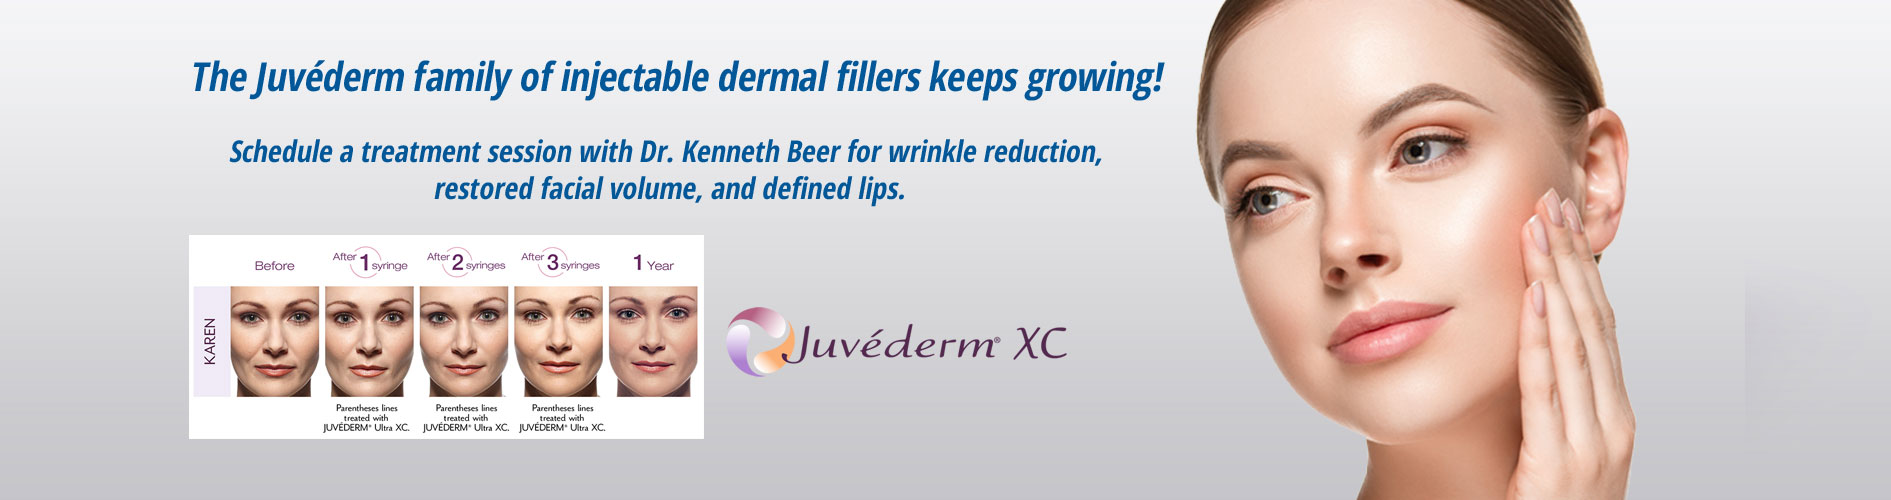 Juvederm Treatment  At Beer Dermatology West Palm Beach